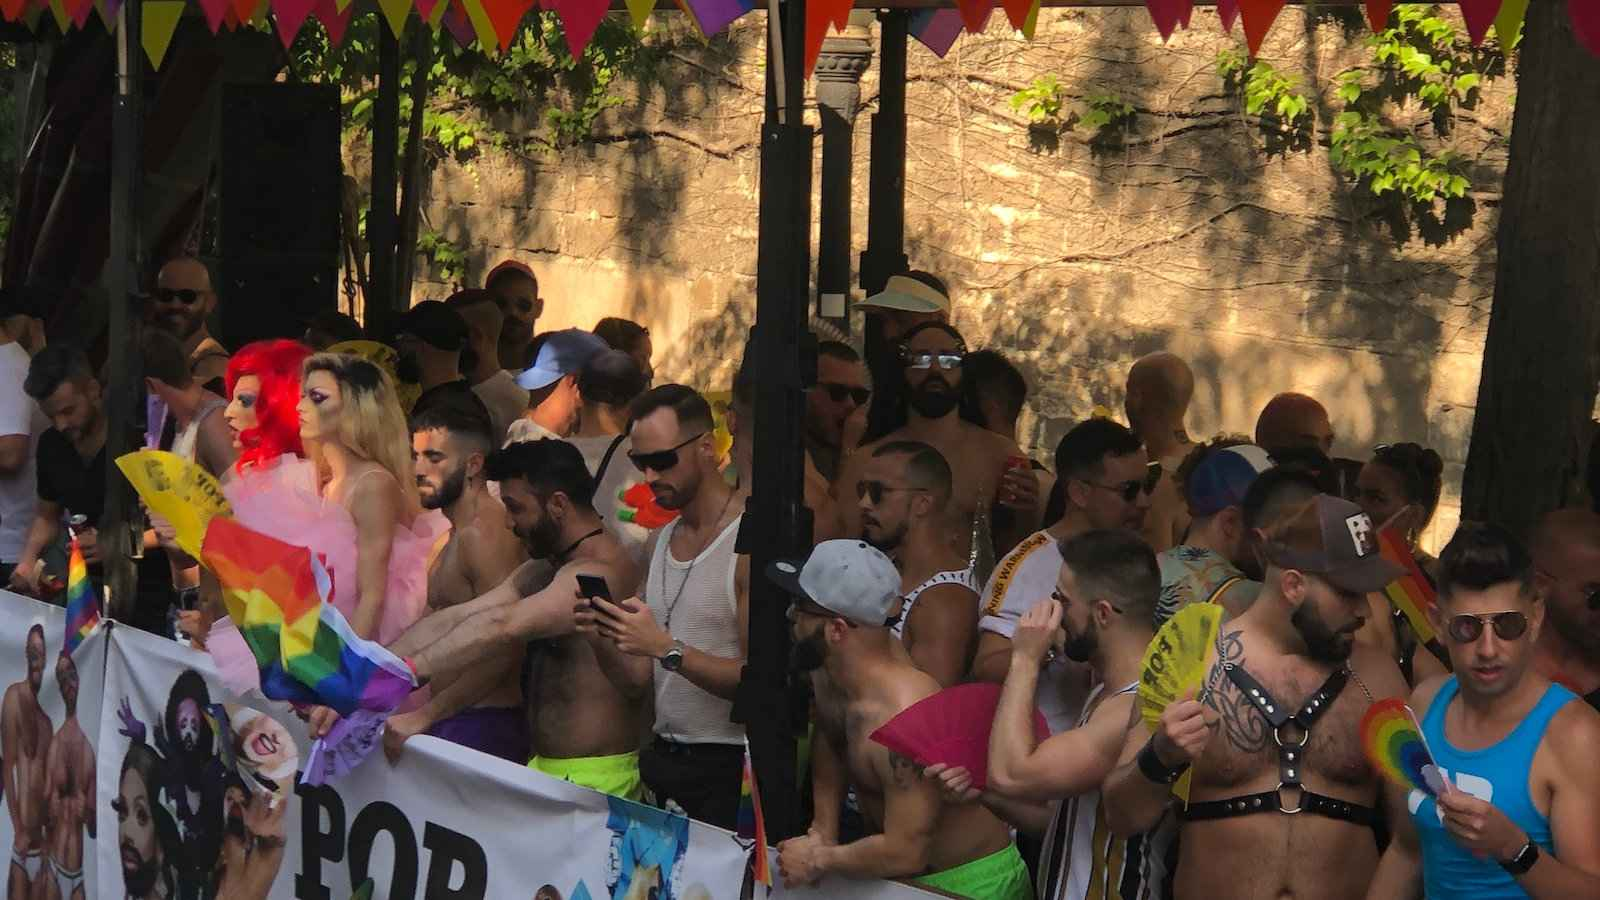 Torremolinos is a fabulously gay city in Spain perfect for settling down in